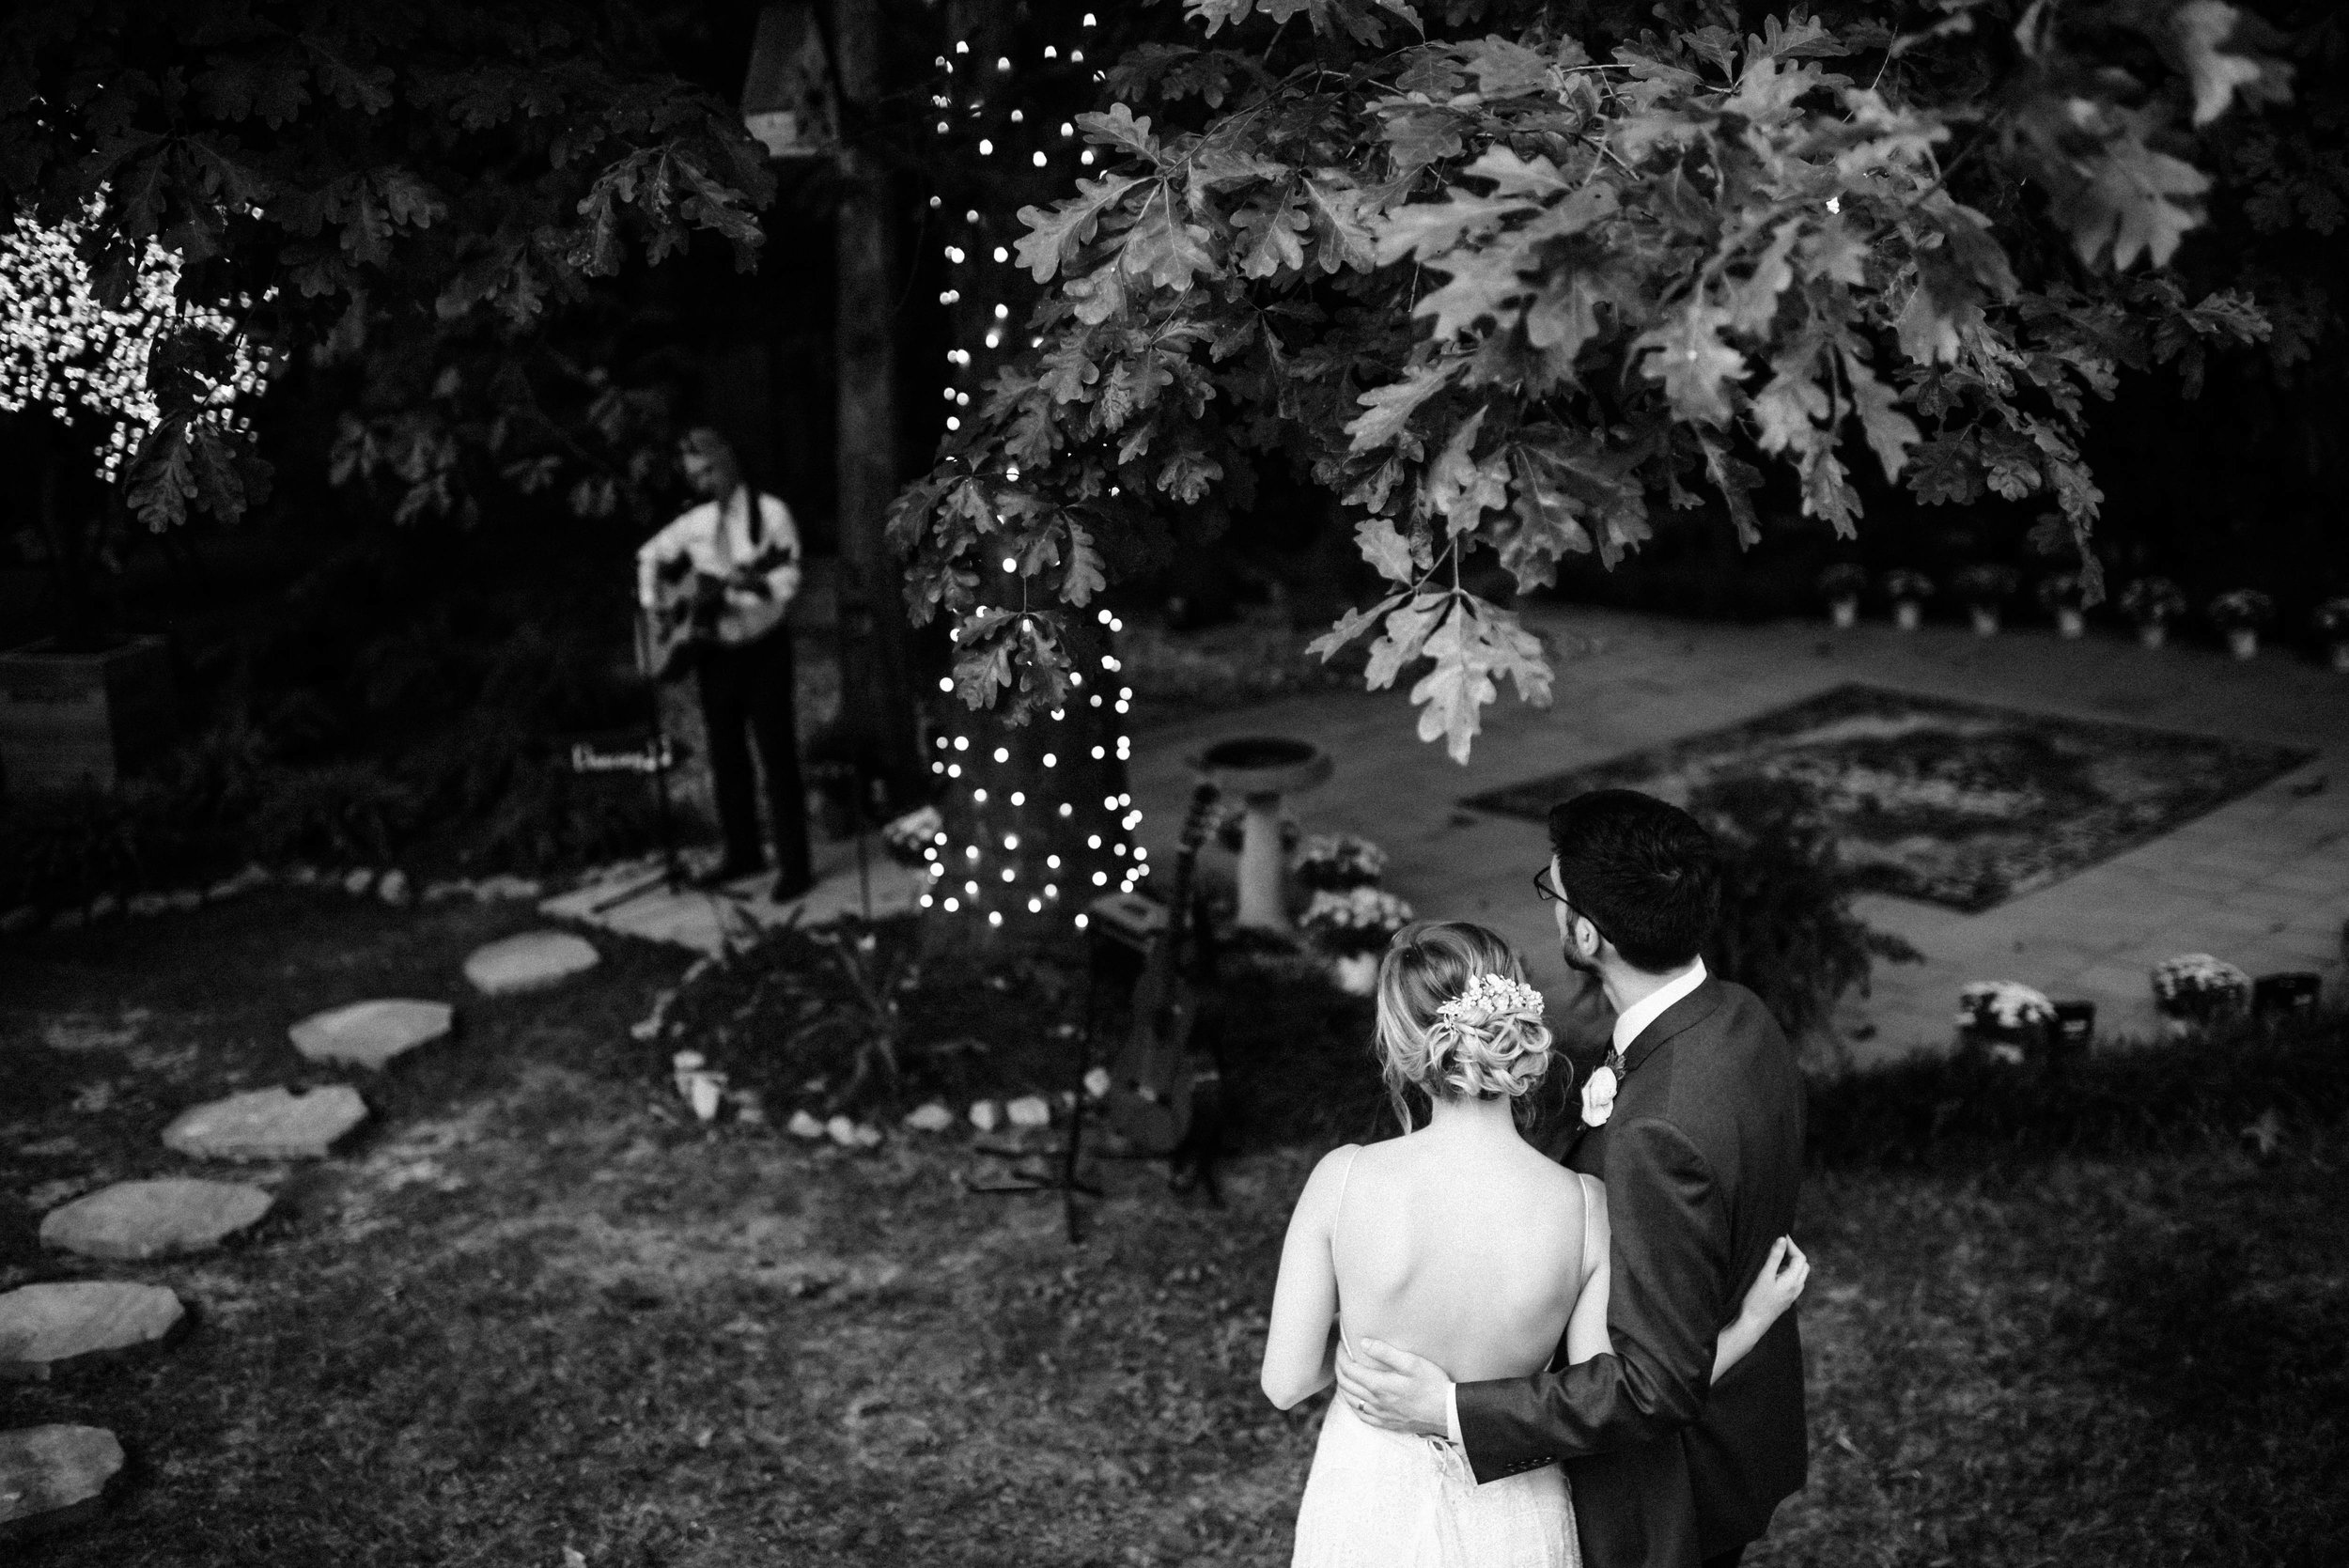 atlanta backyard wedding bay area oakland san francisco engagement wedding nontraditional fun creative eclectic photographer magic-1014.jpg